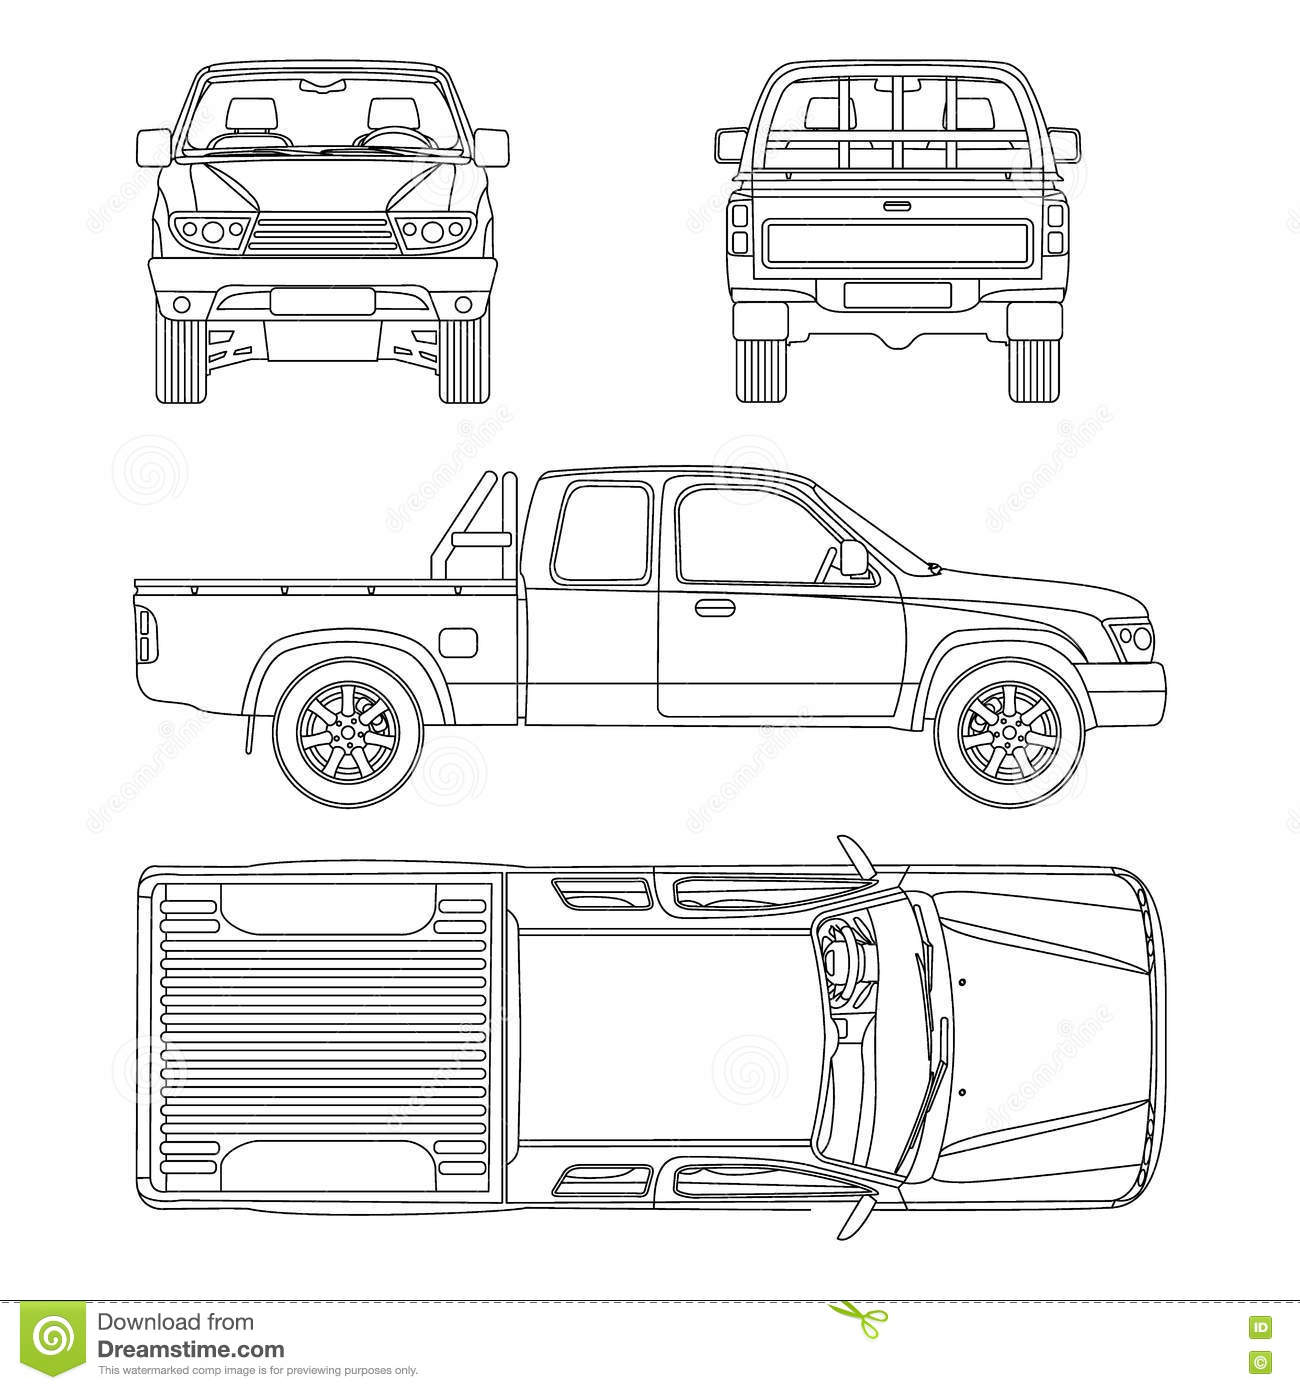 hight resolution of car pickup truck vector illustration